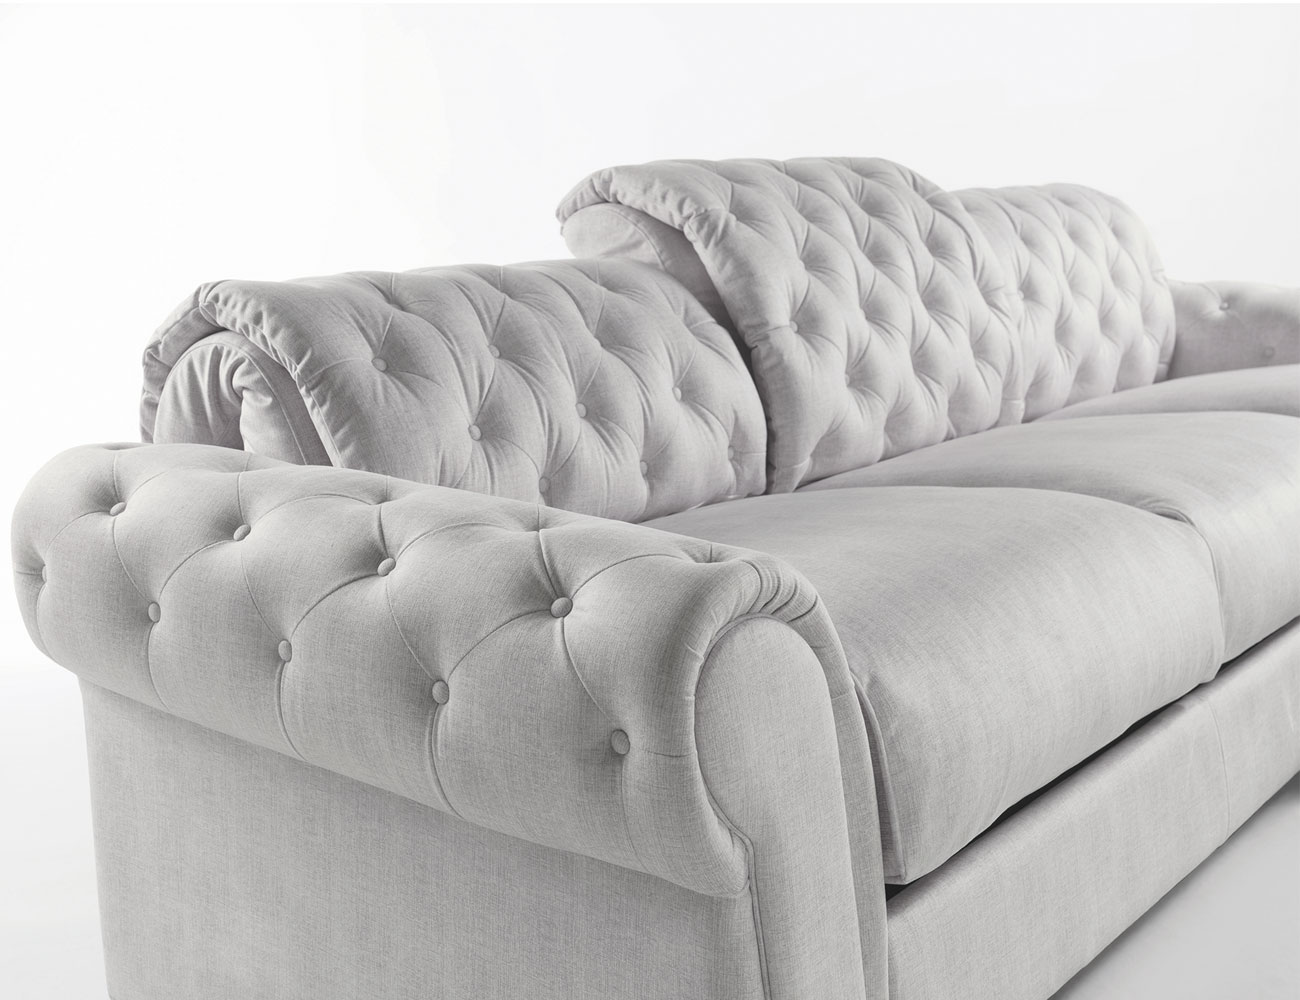 Sofa chaiselongue gran lujo decorativo capitone blanco tela 132